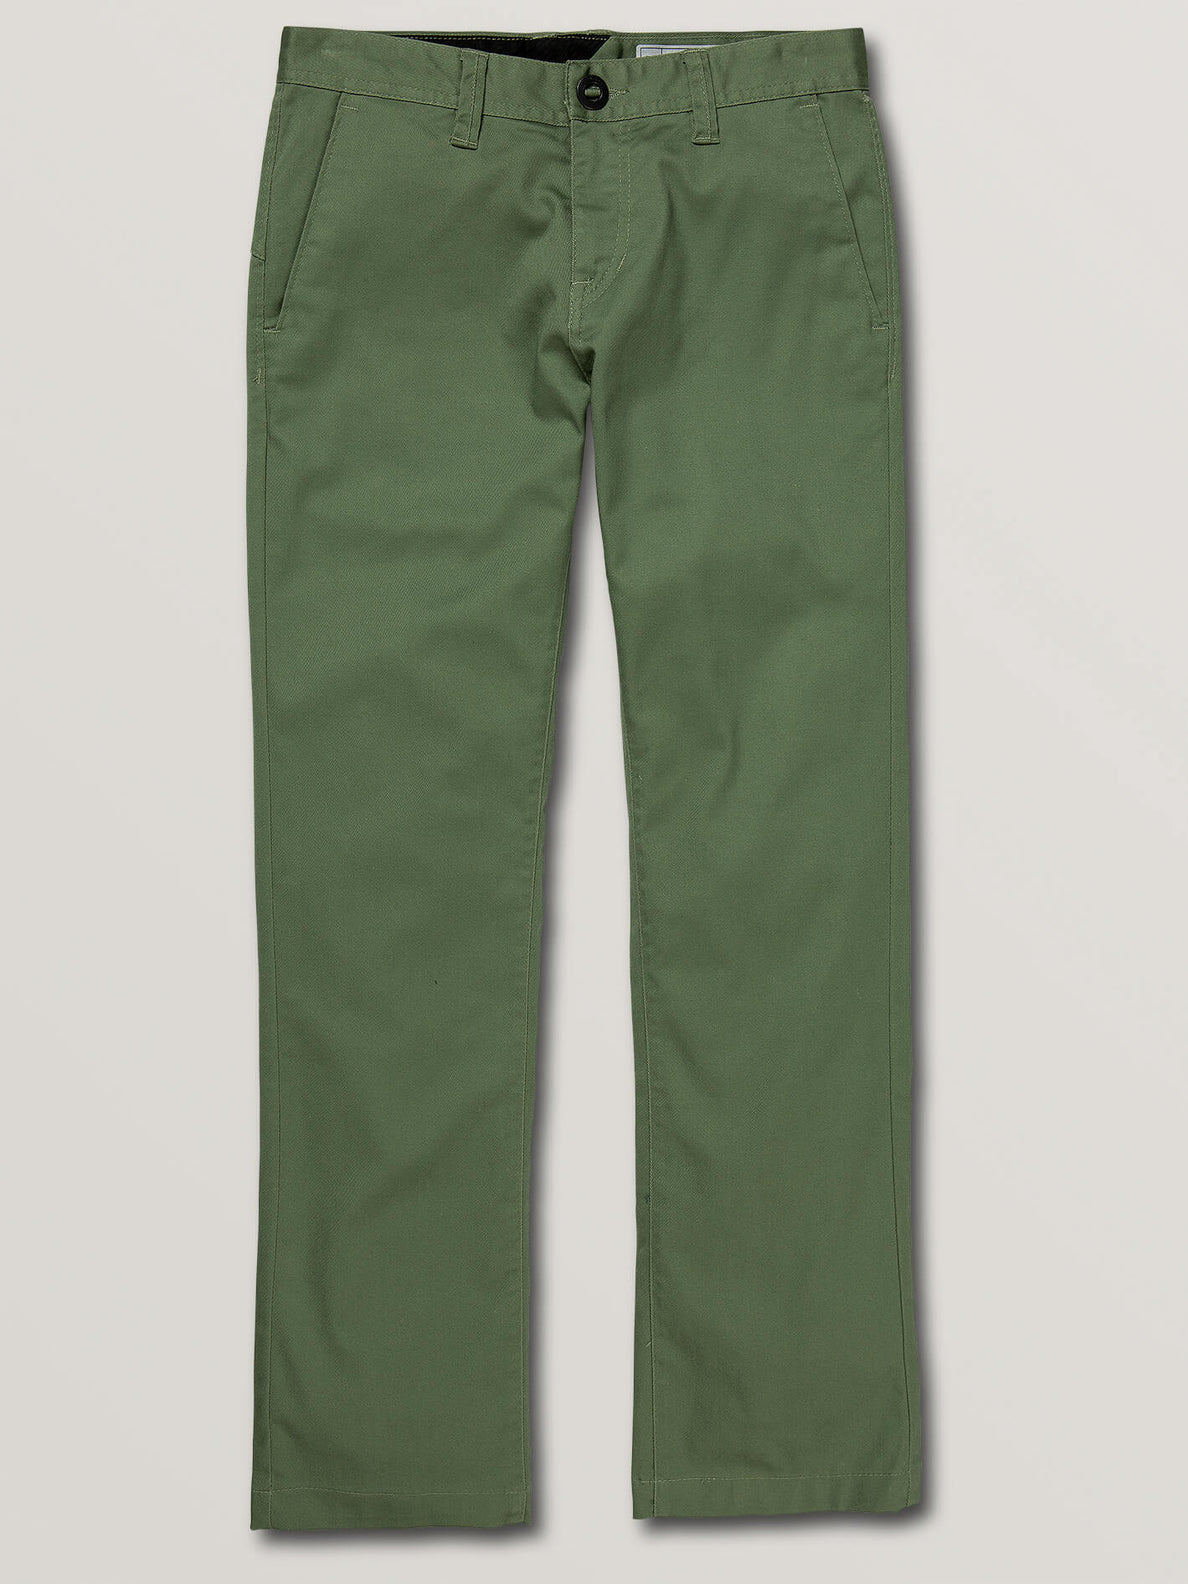 Big Boys Frickin Modern Stretch Chino Pants In Faded Army, Front View